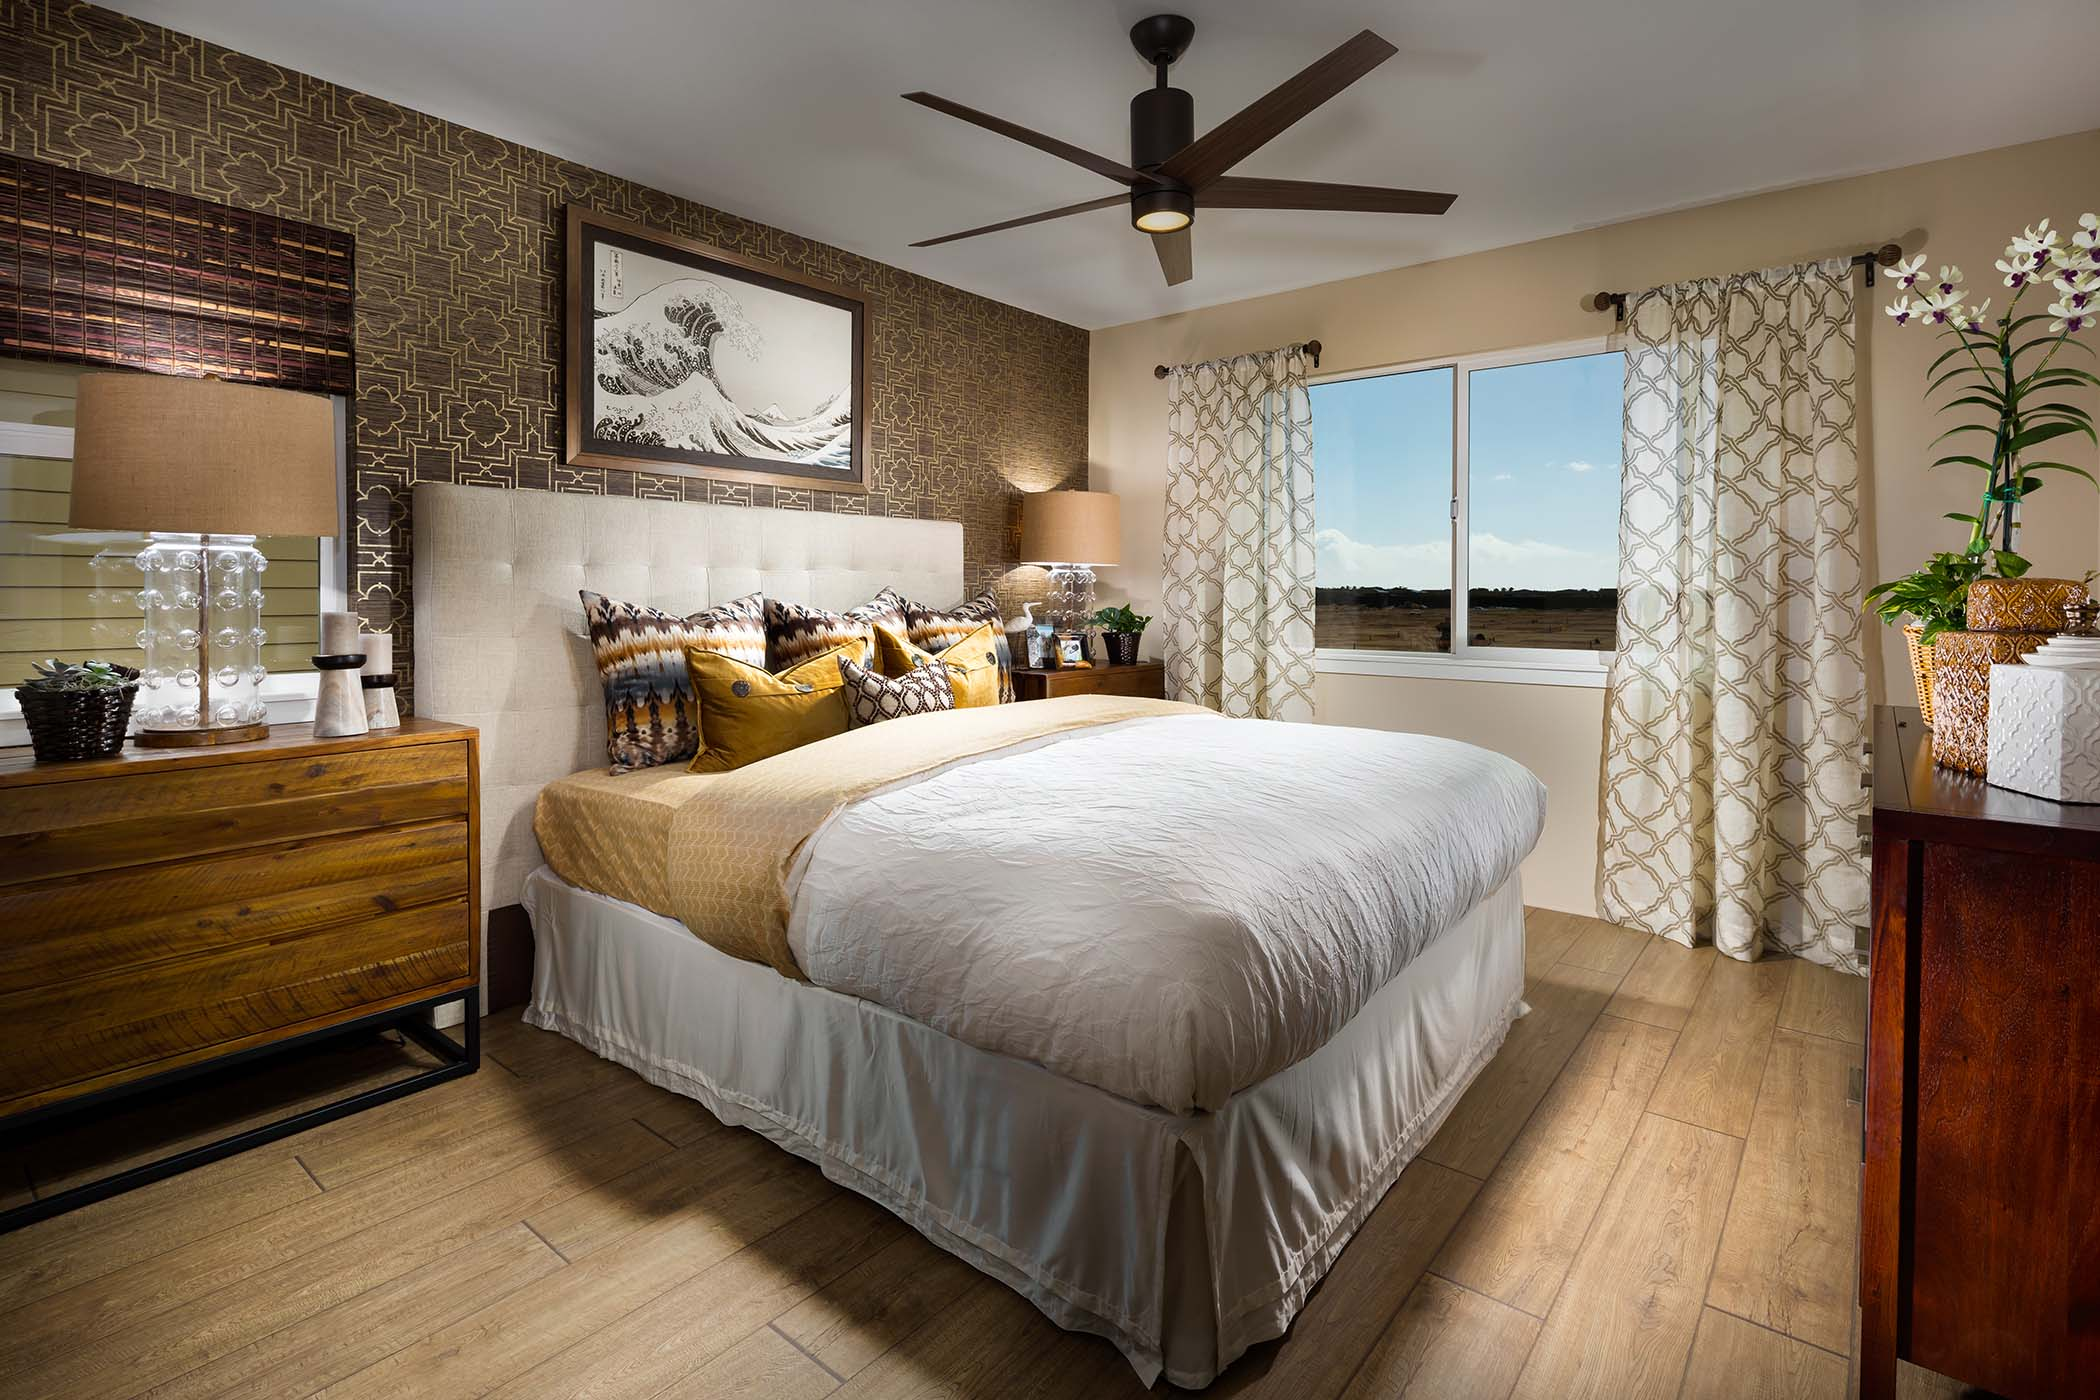 Seabridge Bedroom Rendering2